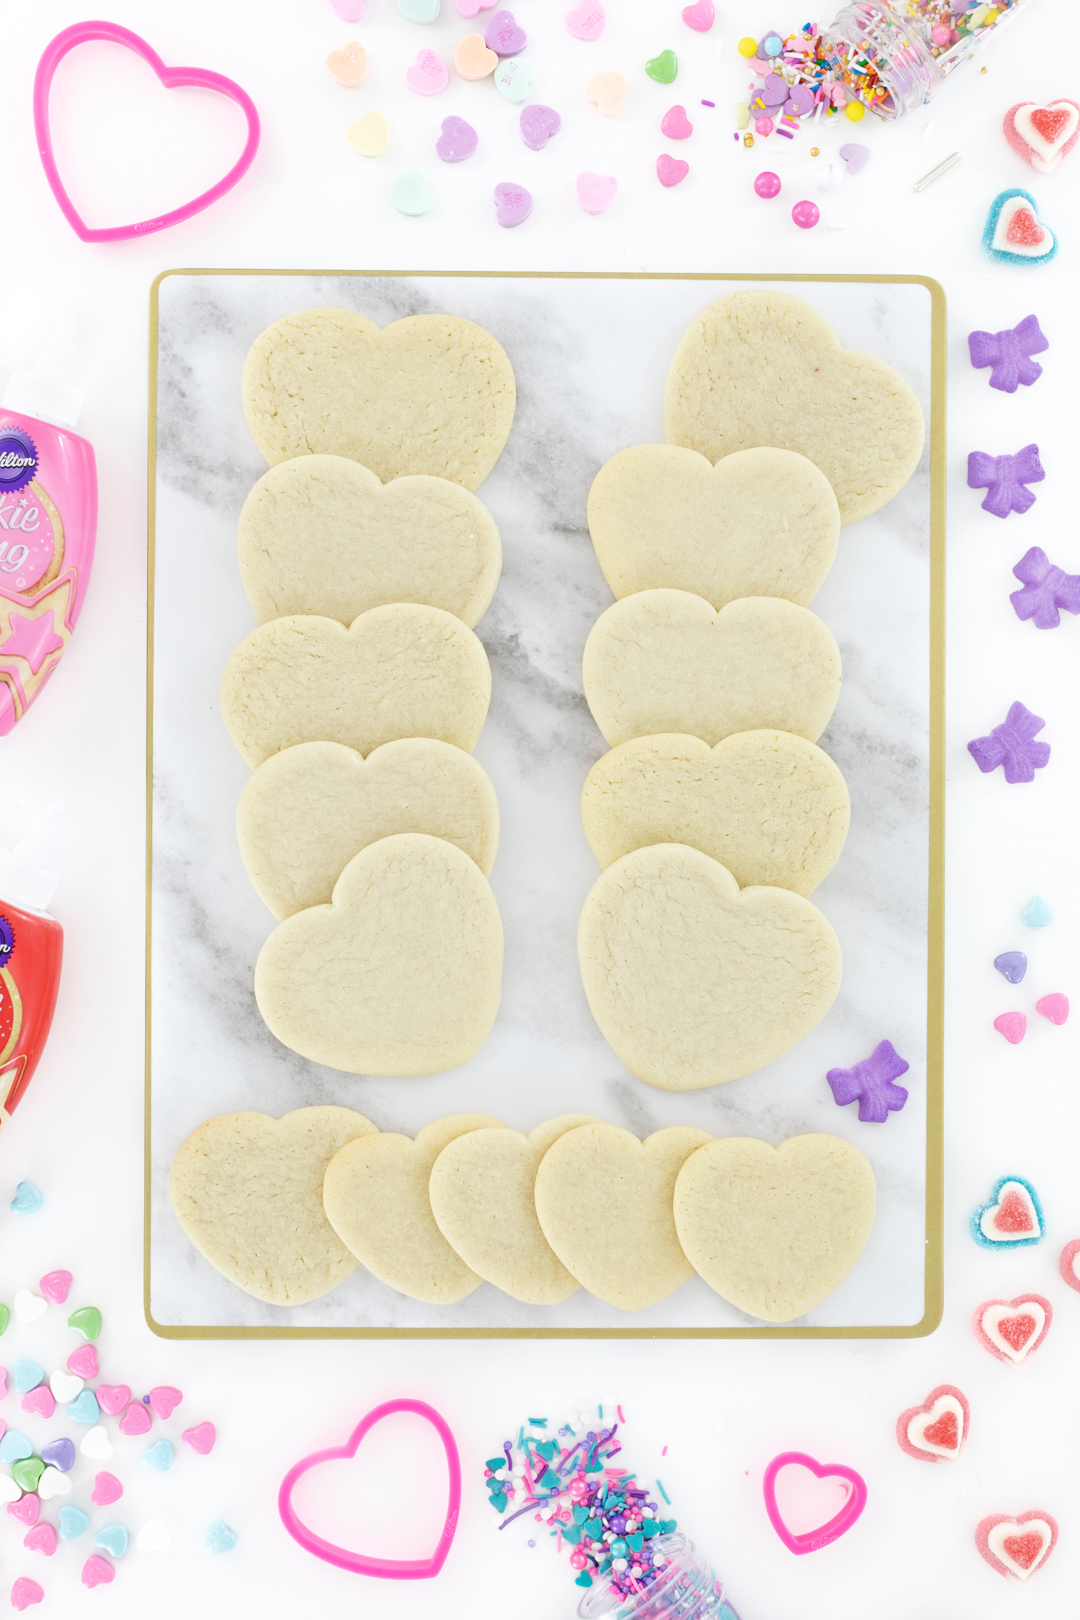 Tray of plain heart sugar cookies to decorate